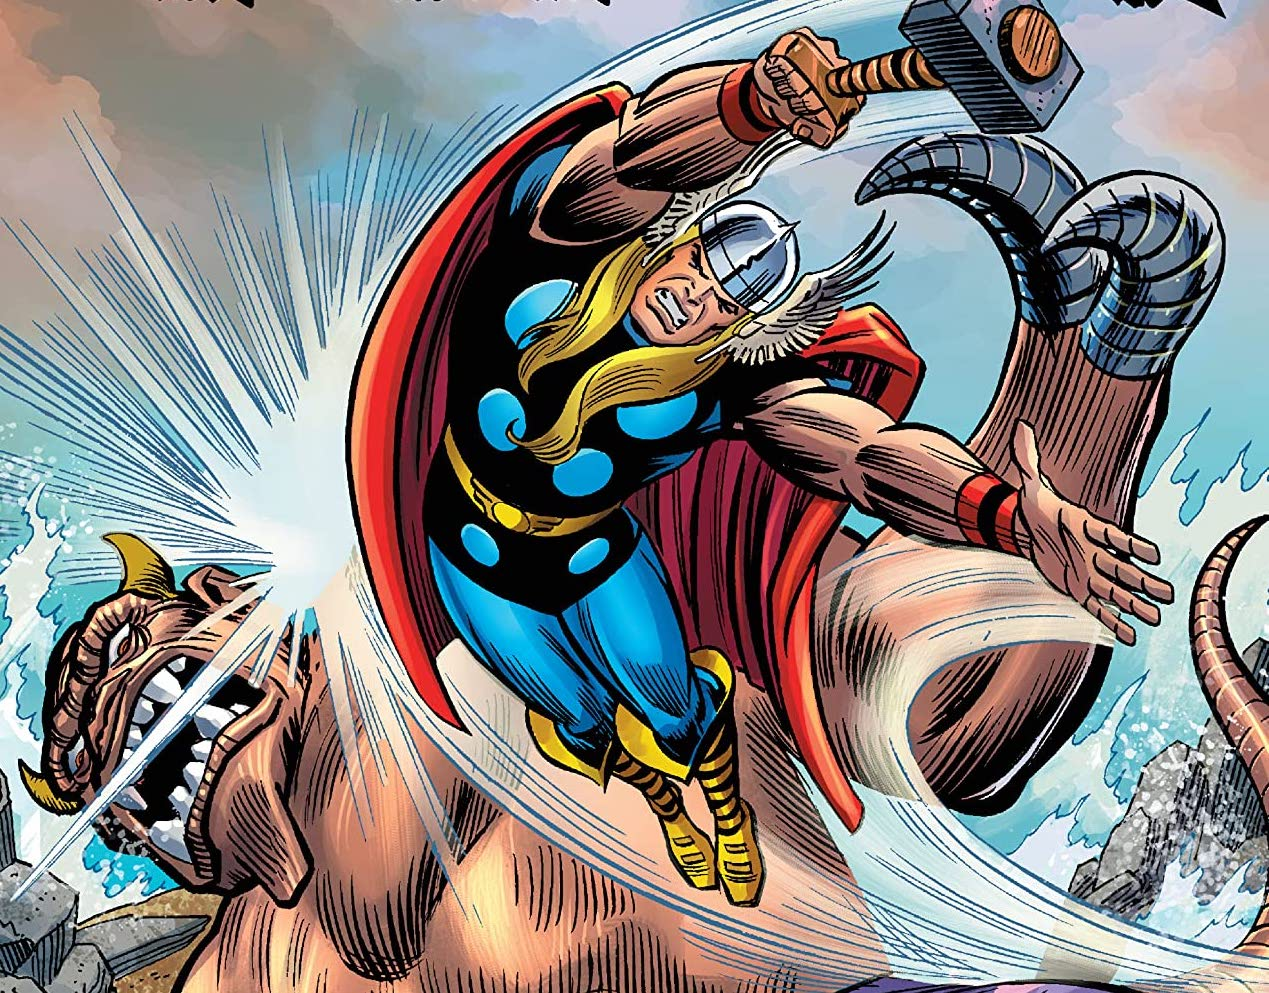 Relive the early '70s, God of Thunder style!